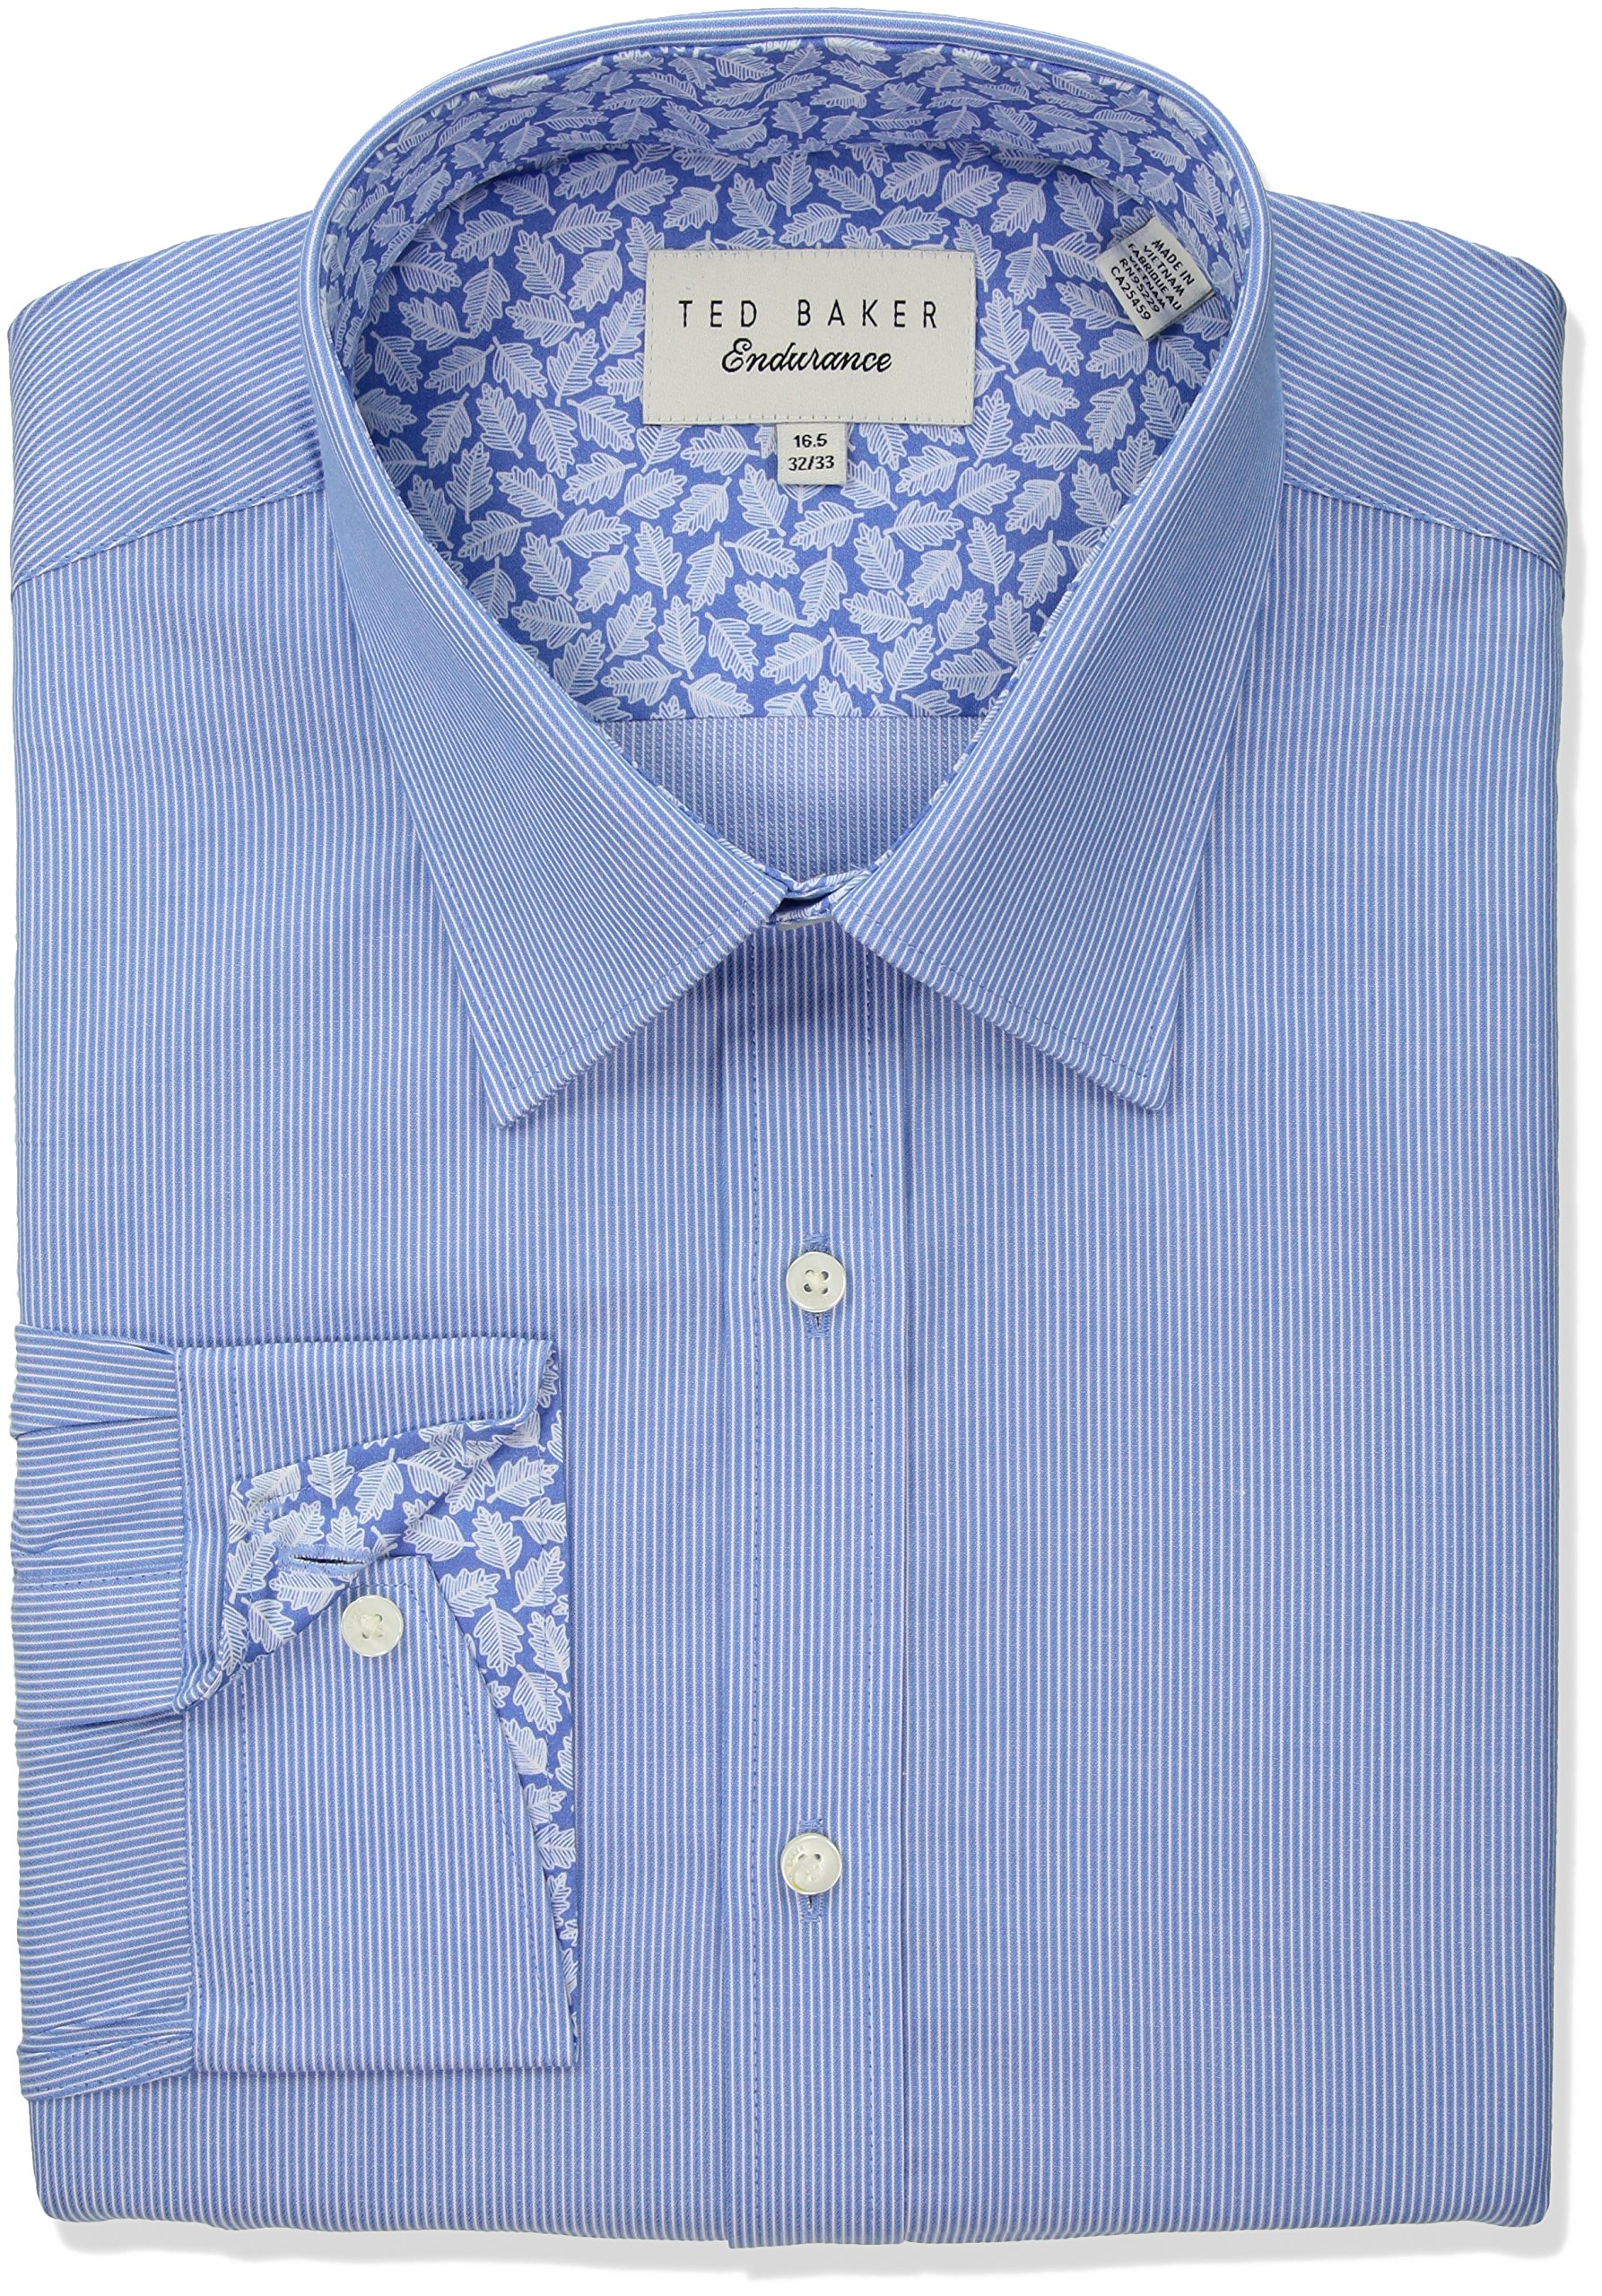 Ted Baker Men's Strem Slim Fit Dress Shirt, Blue, 15.5'' Neck 34''-35'' Sleeve